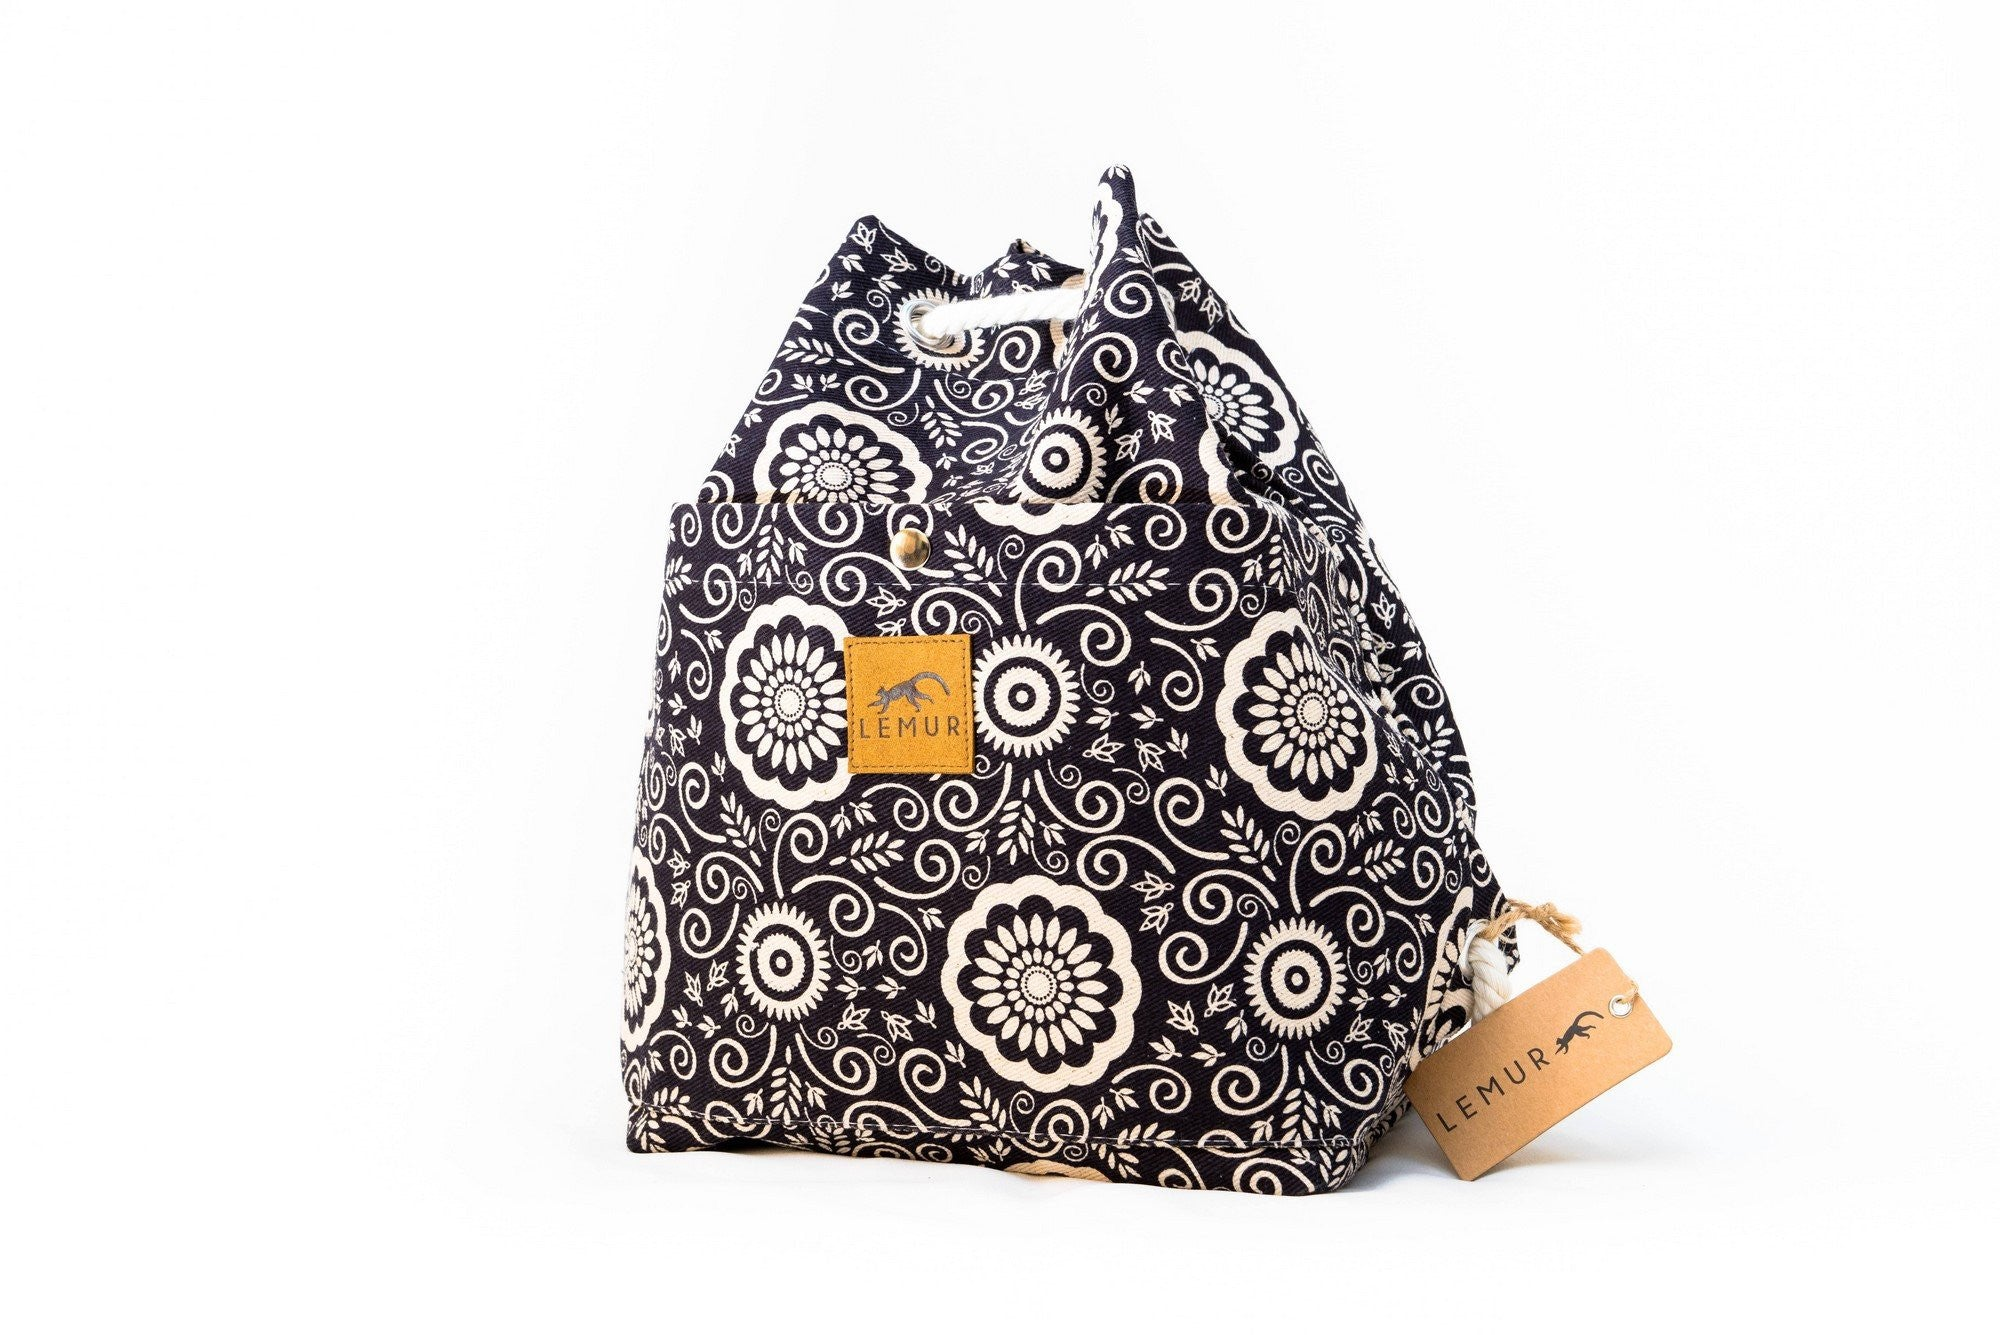 Canvas Travel Daypack - Canvas Travel Daypack - Rope Drawstring Cinchsack By Lemur Bags (Floral)